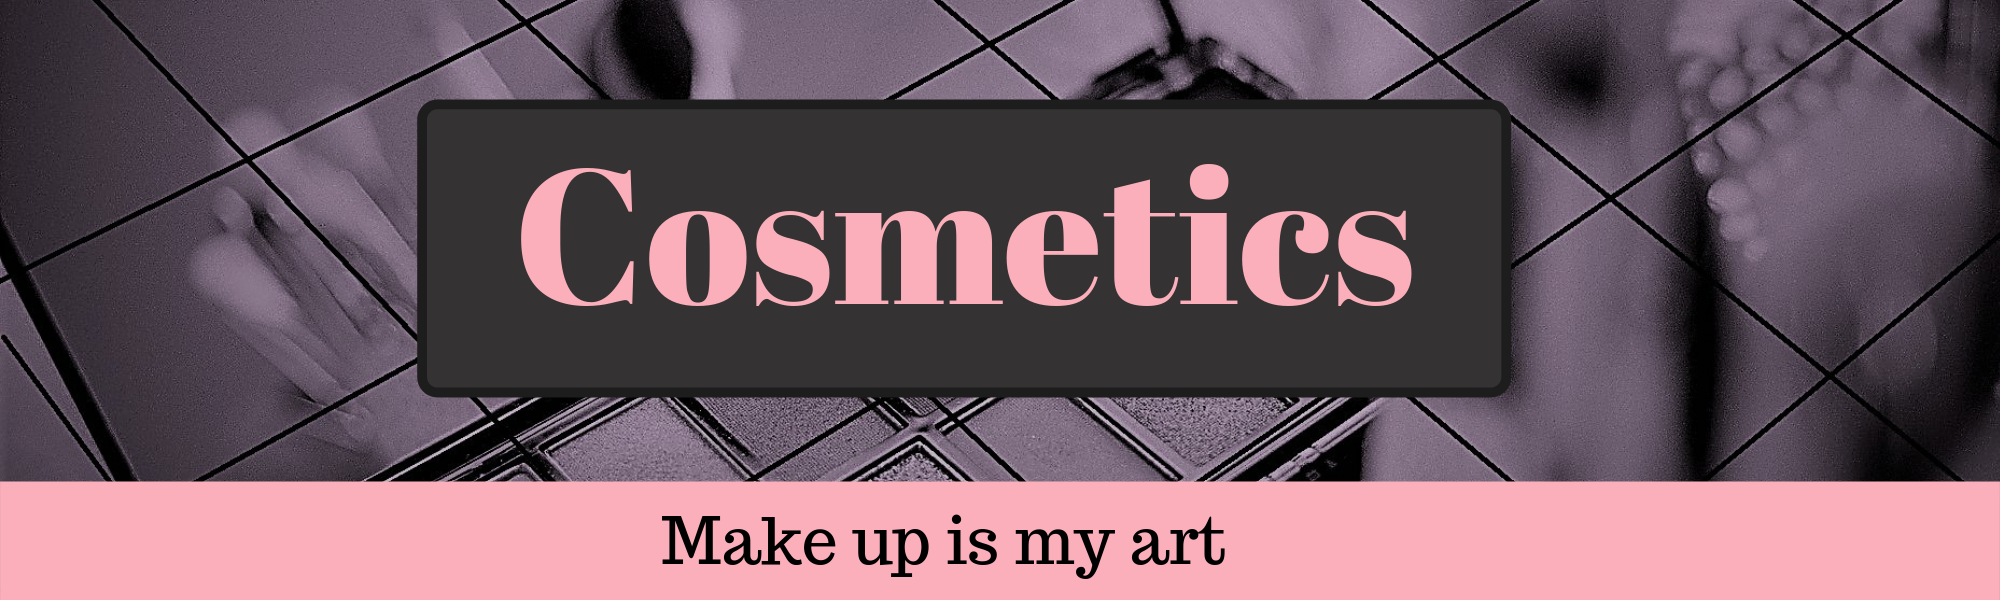 makeup category banner 2